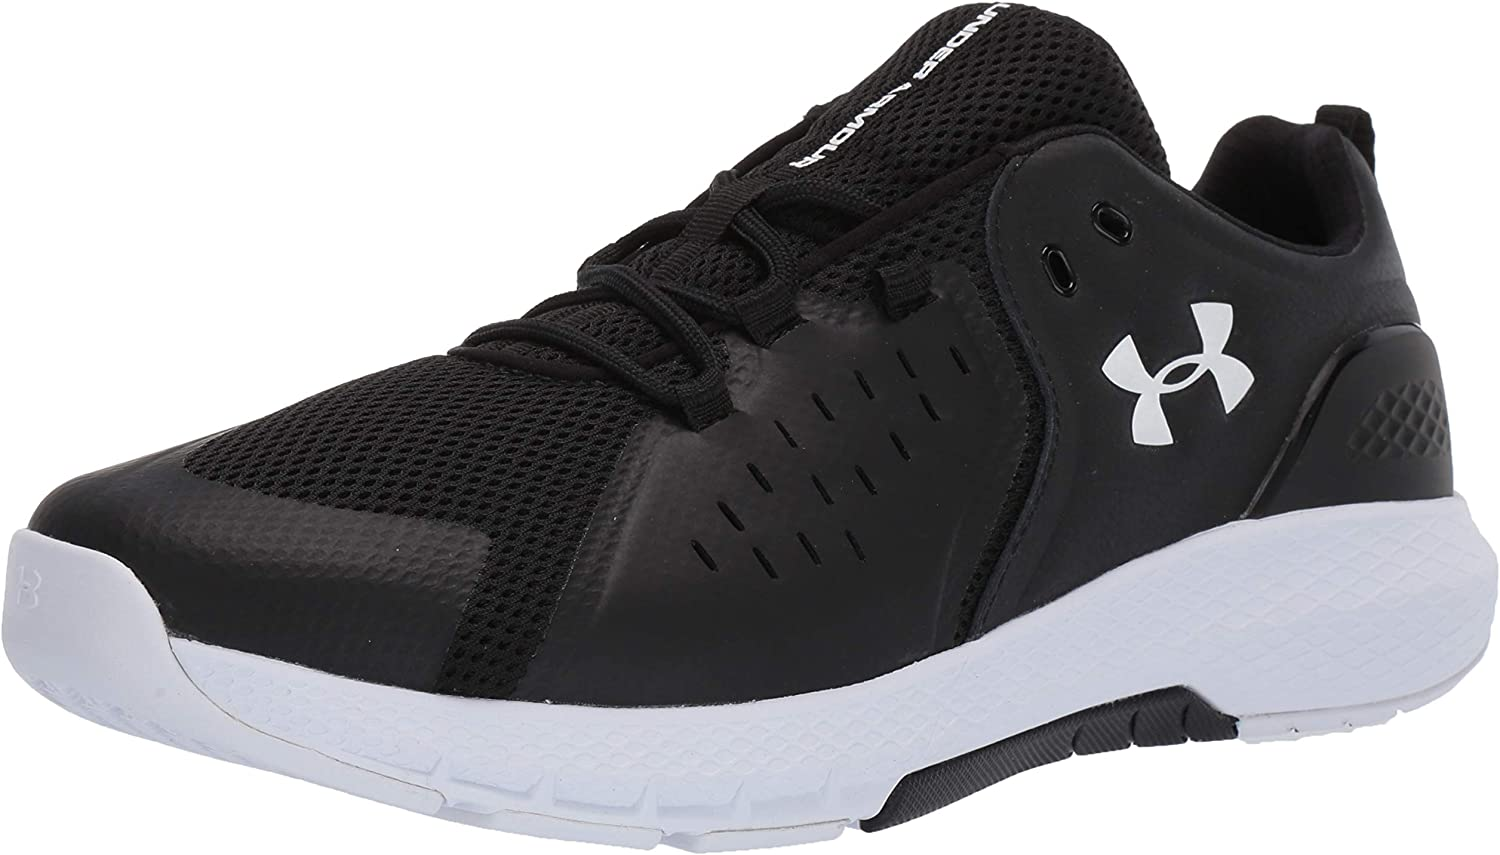 Under Armour Men s Charged Commit Tr 2.0 Cross Trainer